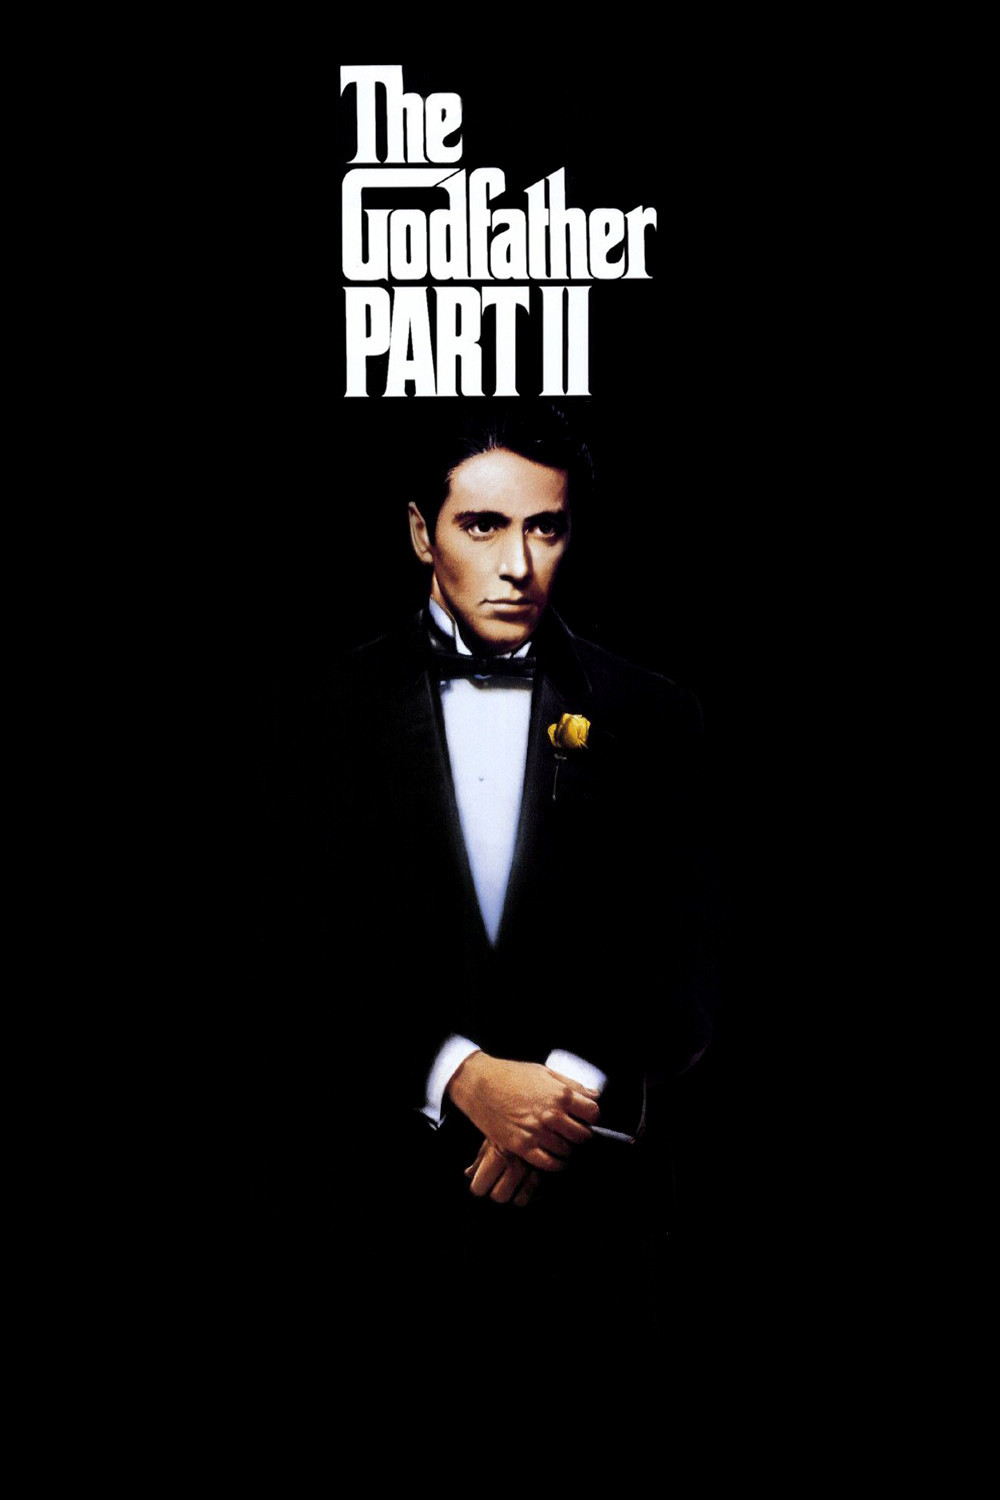 the godfather part ii Filmul the godfather: part ii - naşul ii (1974) este online subtitrat în format hd și este oferit de pefilmenet.